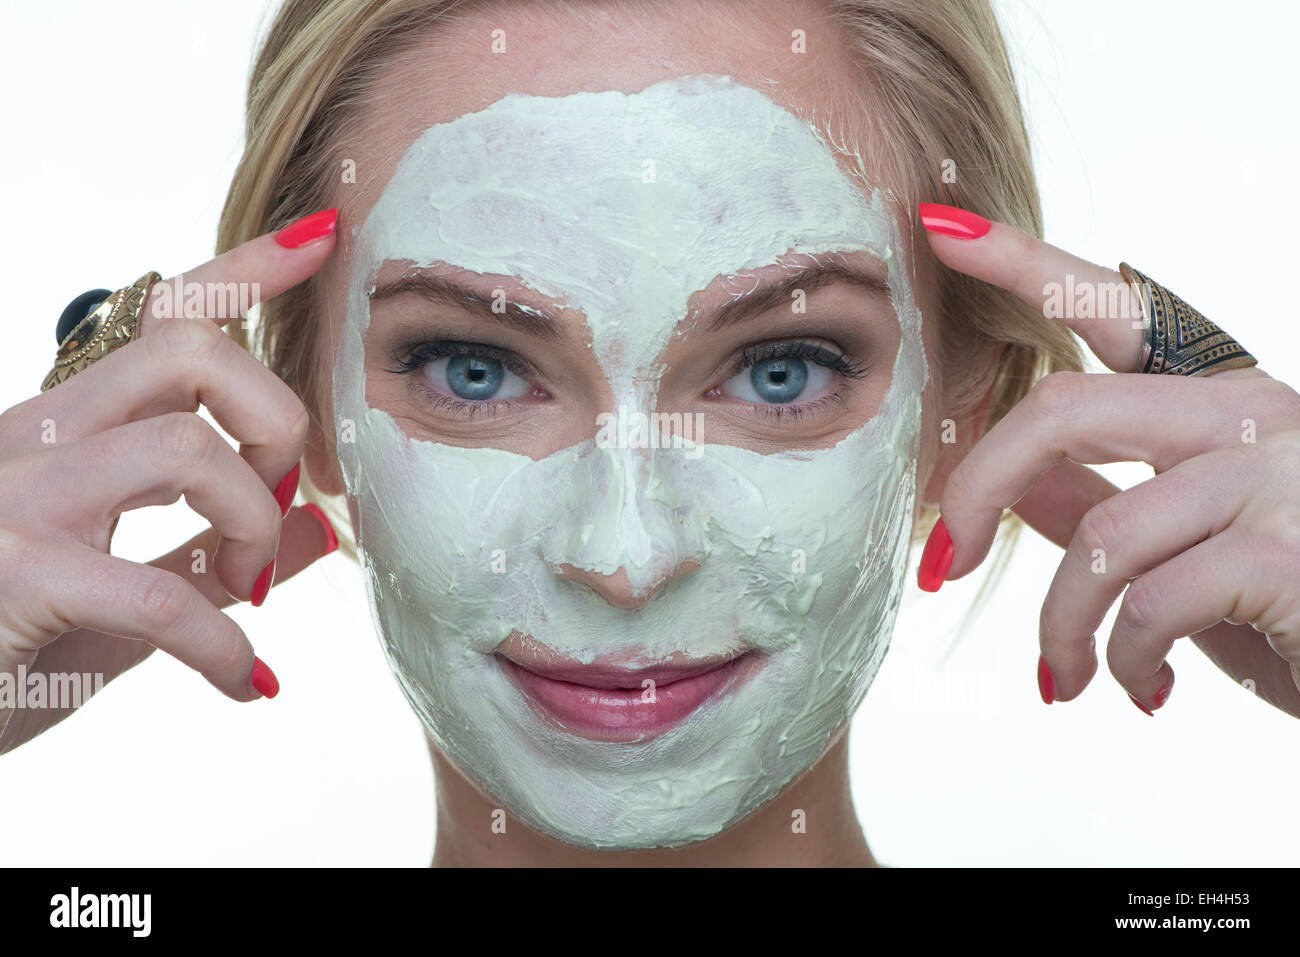 blonde woman with a face mask skincare - Stock Image